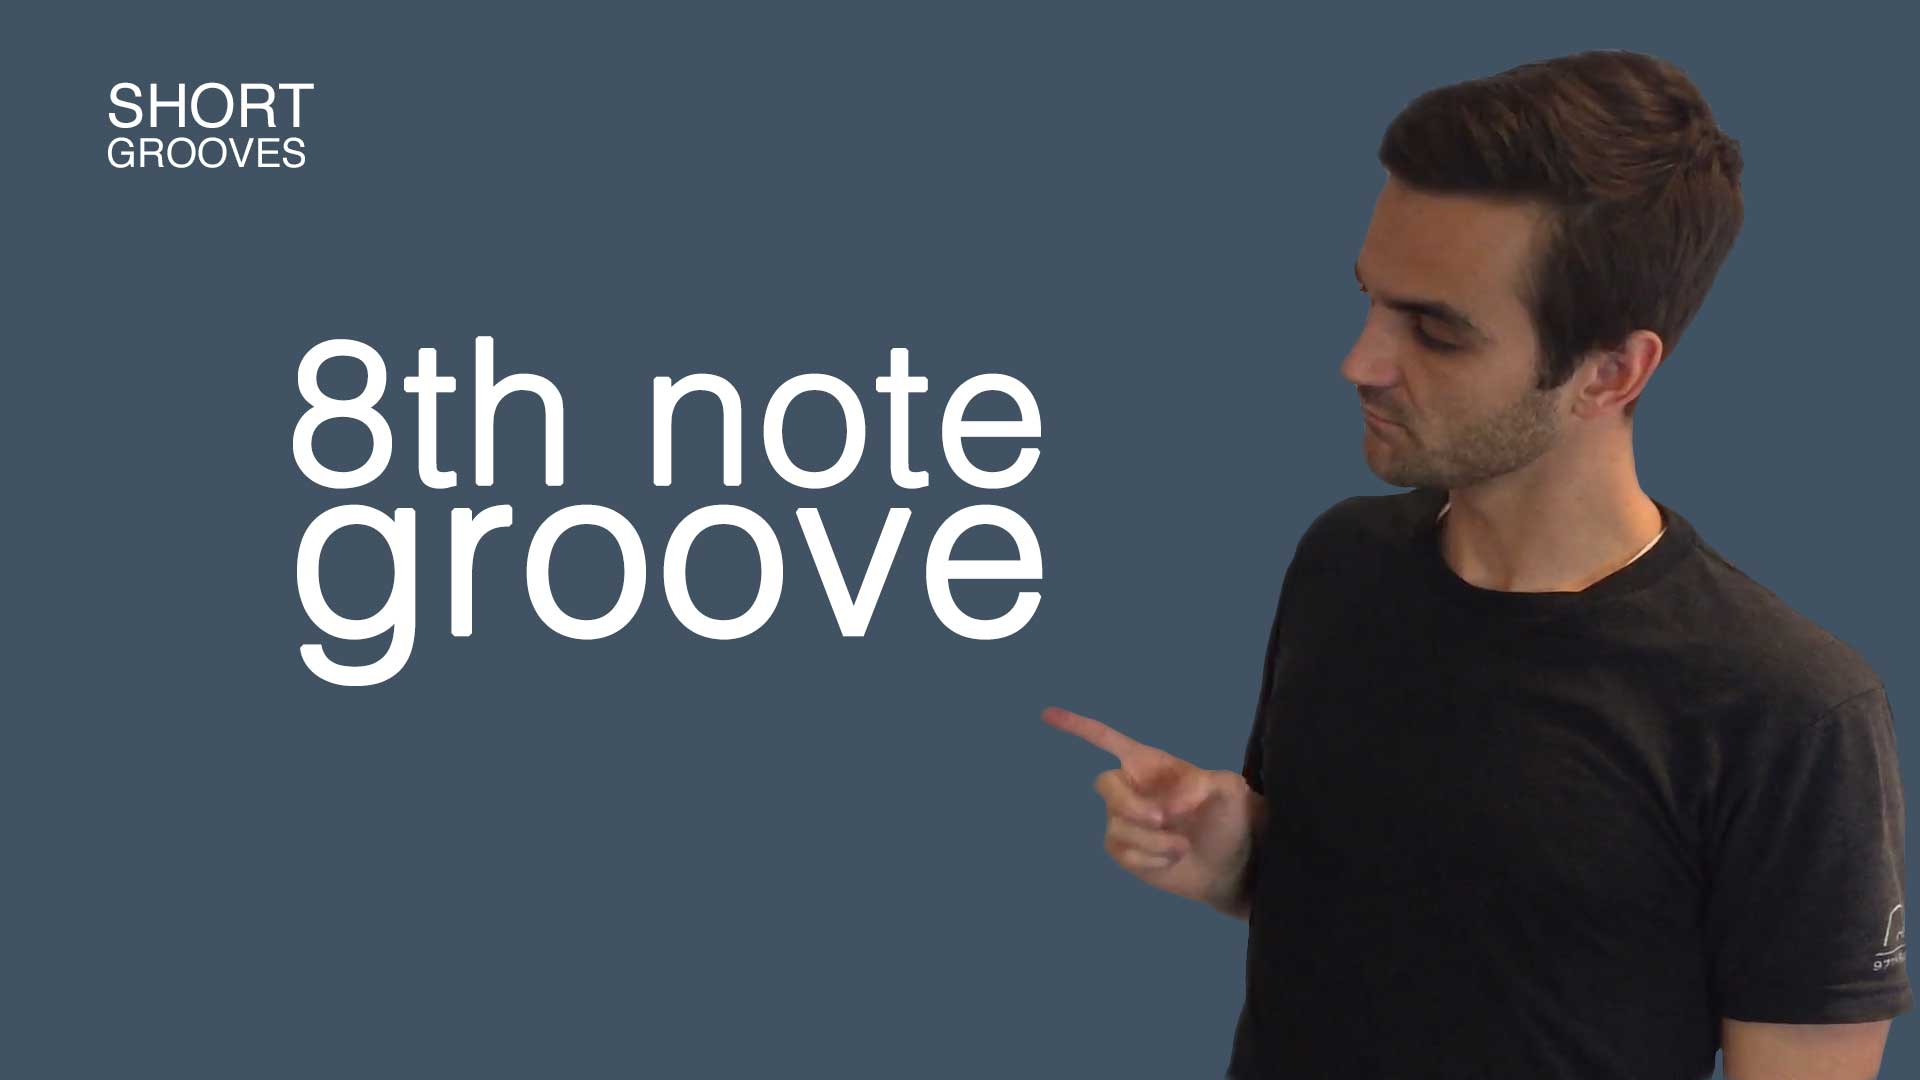 #1 | 8th note groove (Short Grooves)